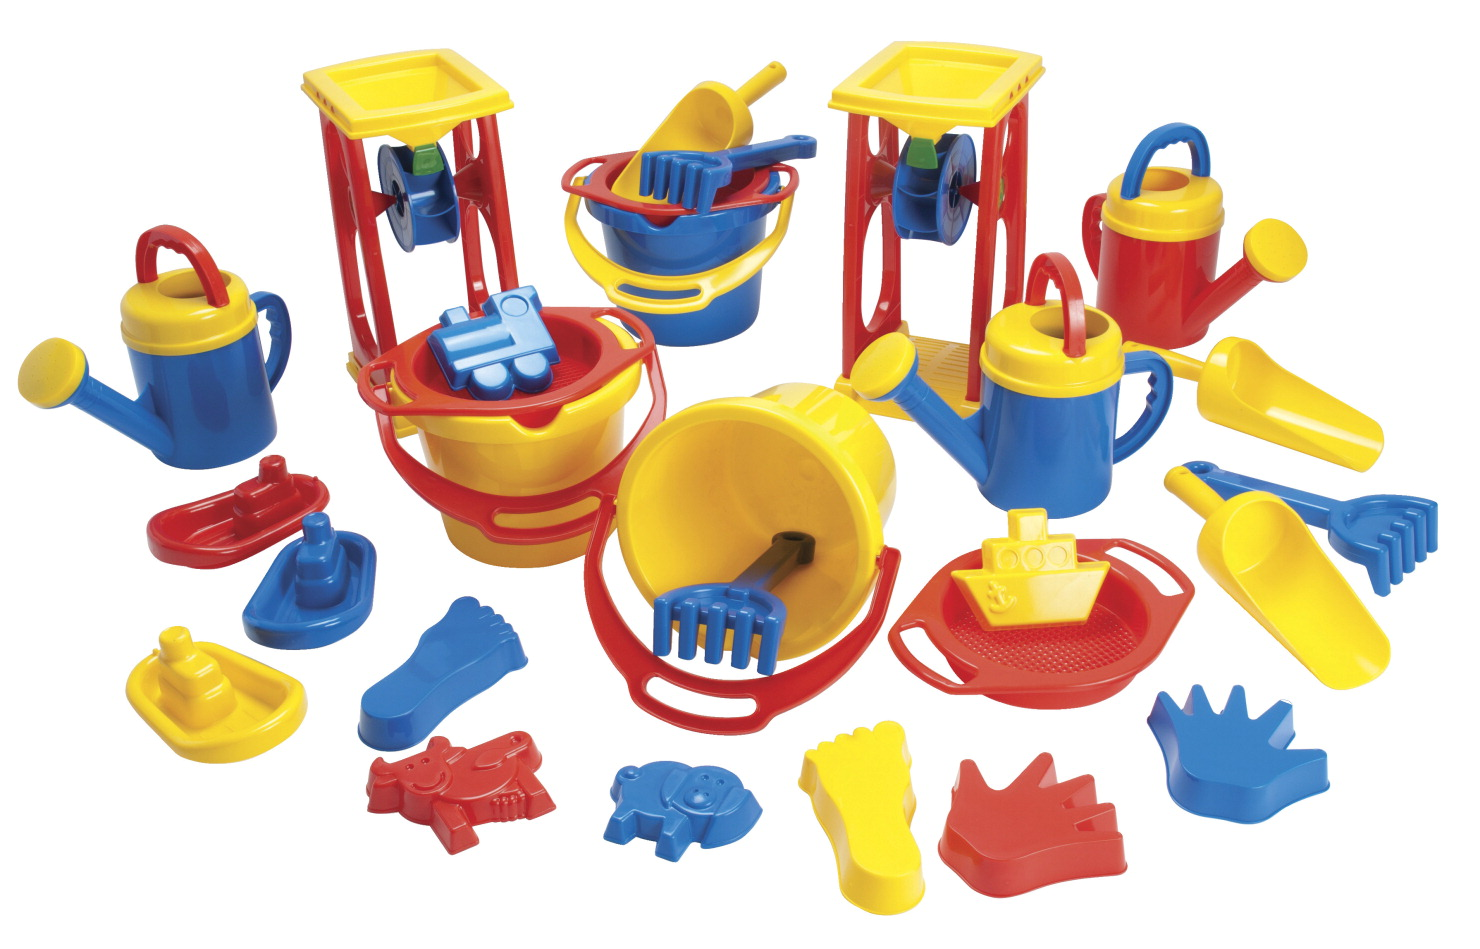 Childcraft Classroom Sand And Water Play Set 28 Pieces